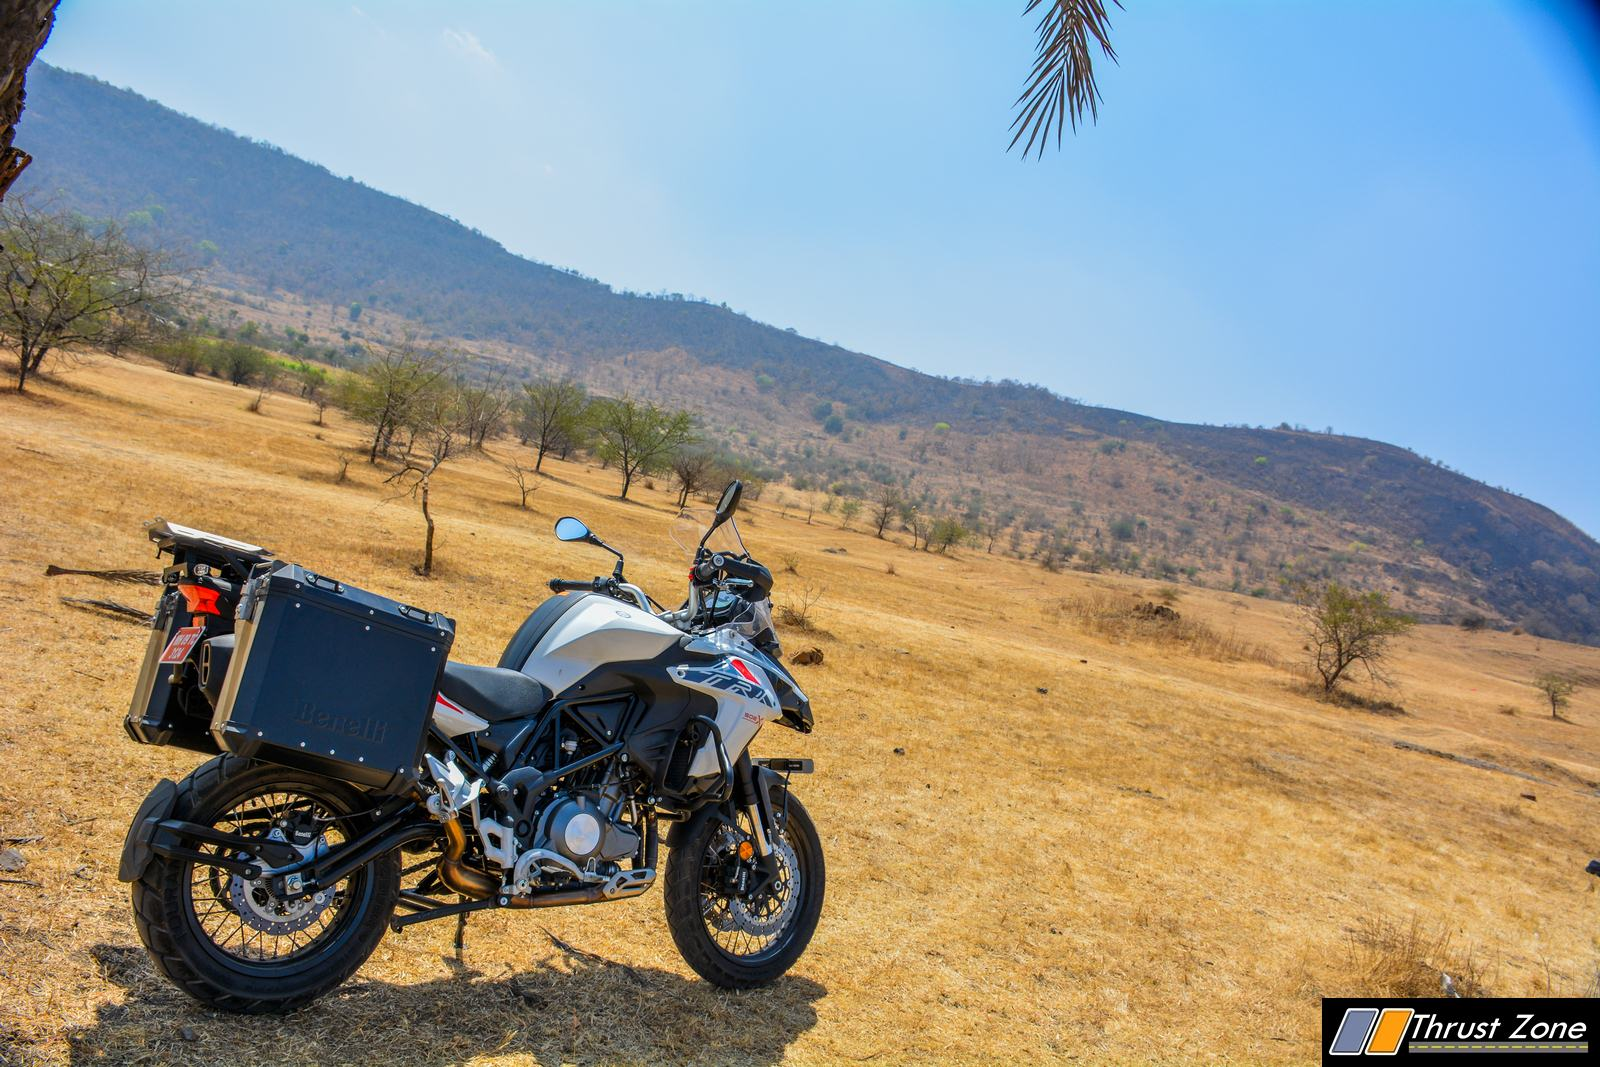 https://www.thrustzone.com/wp-content/uploads/2019/03/Benelli-TRK-502X-India-Review-4.jpg